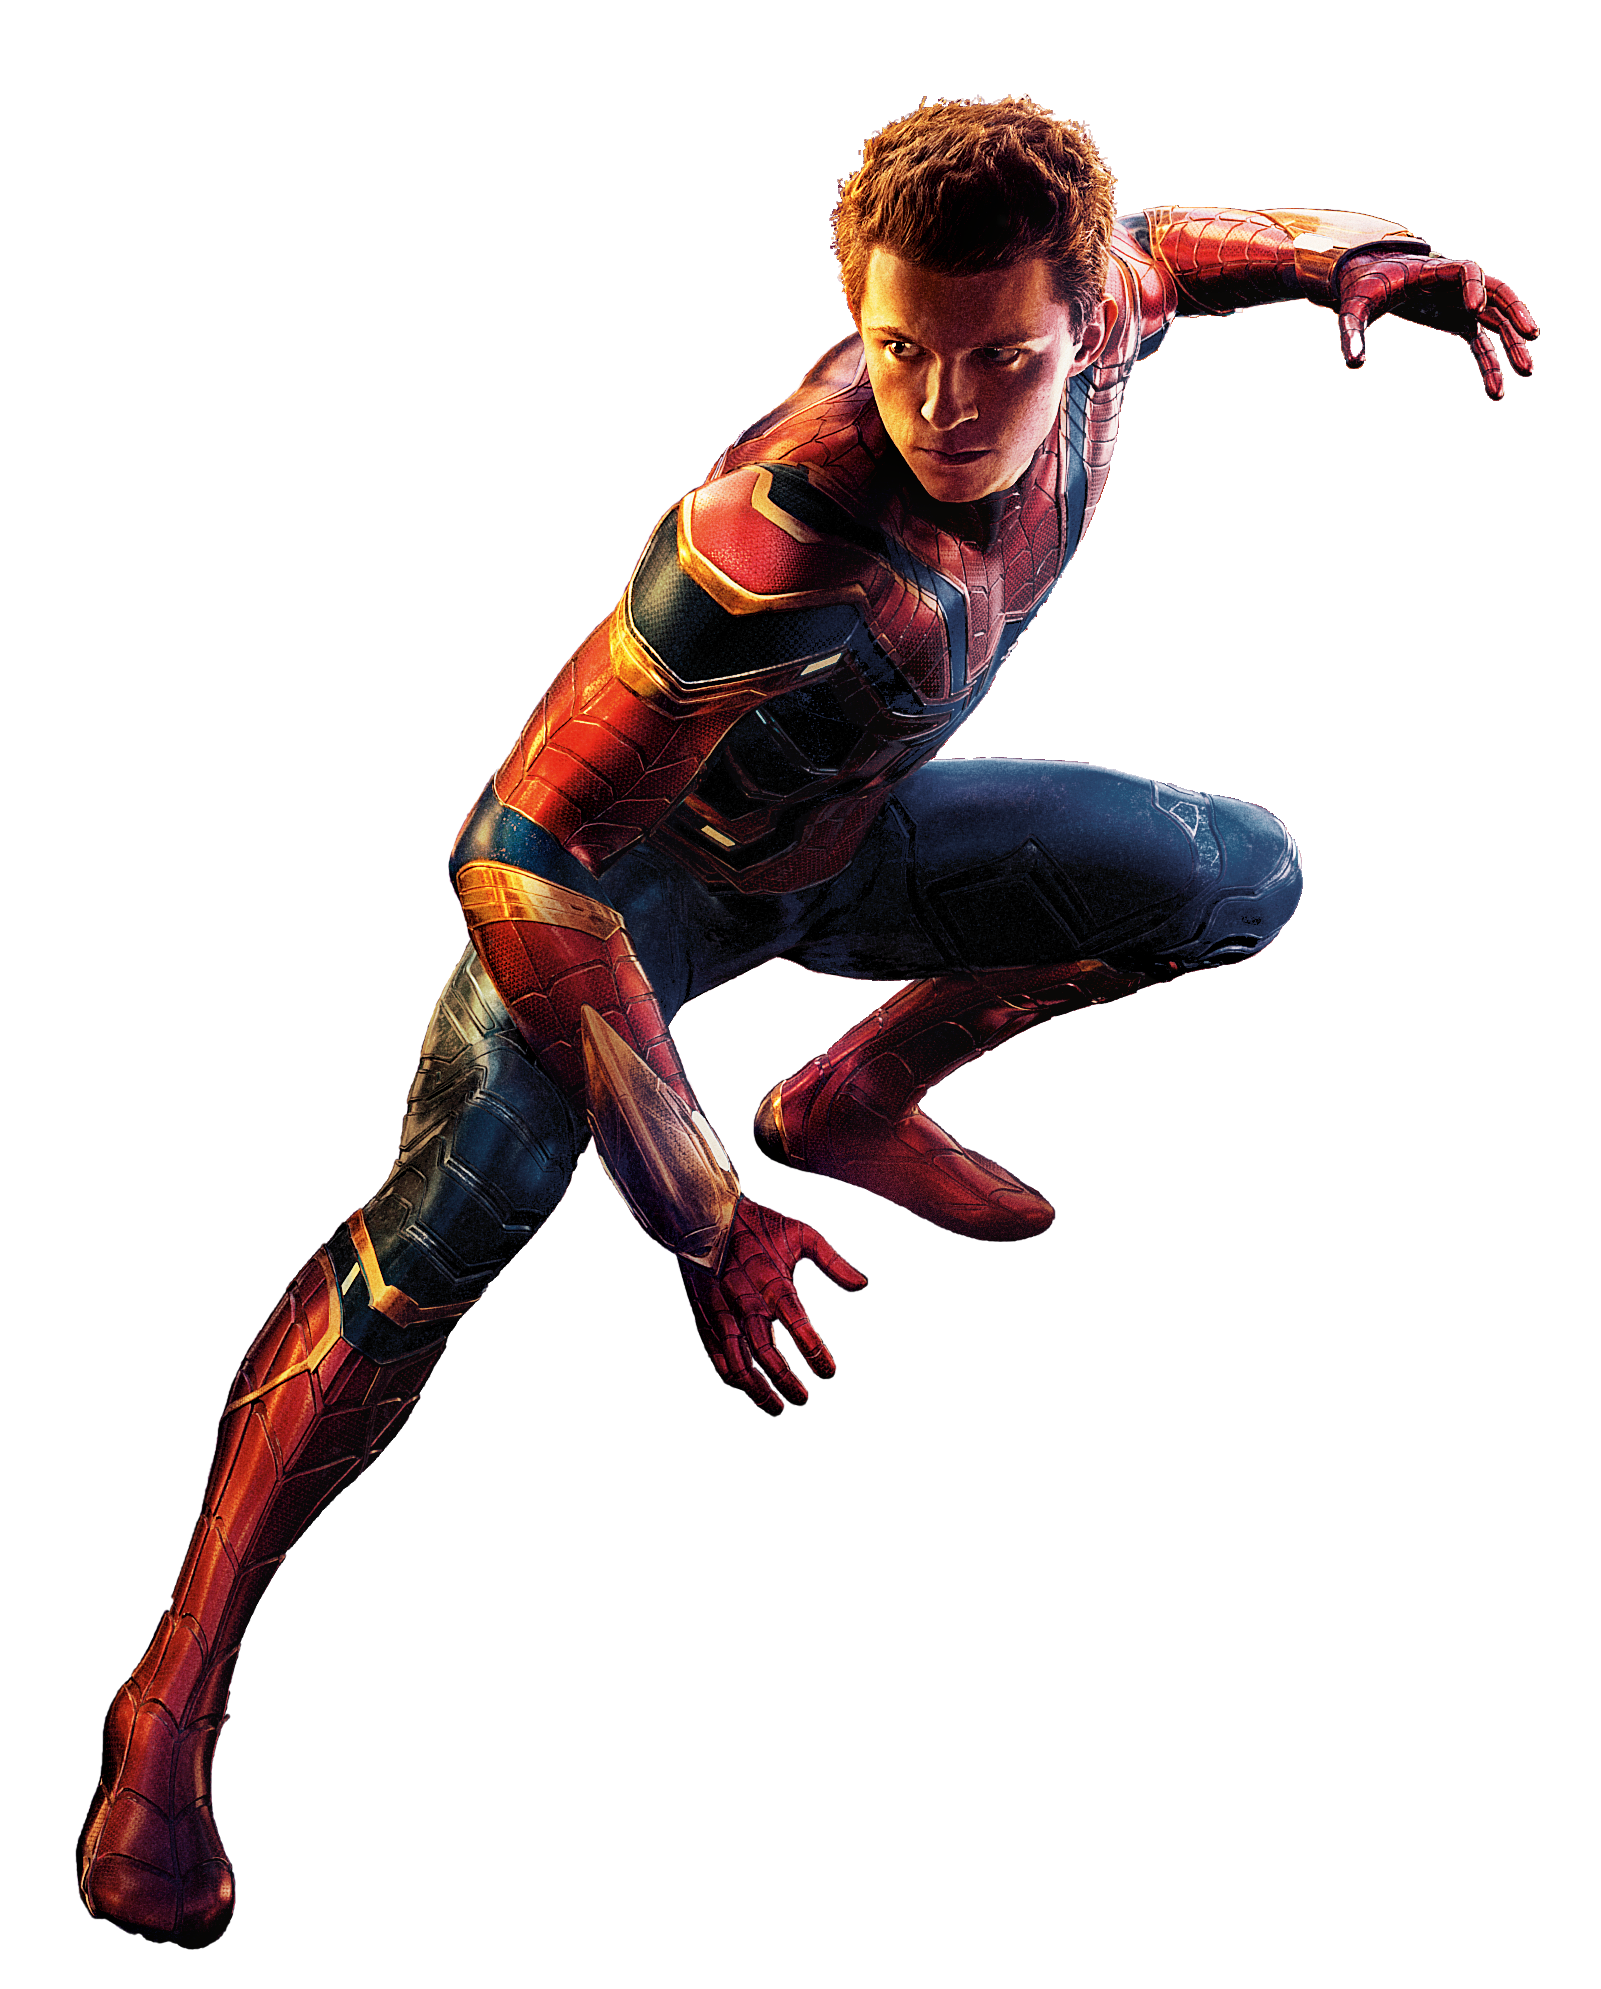 Iron spider png. Image peter ironspider aiw